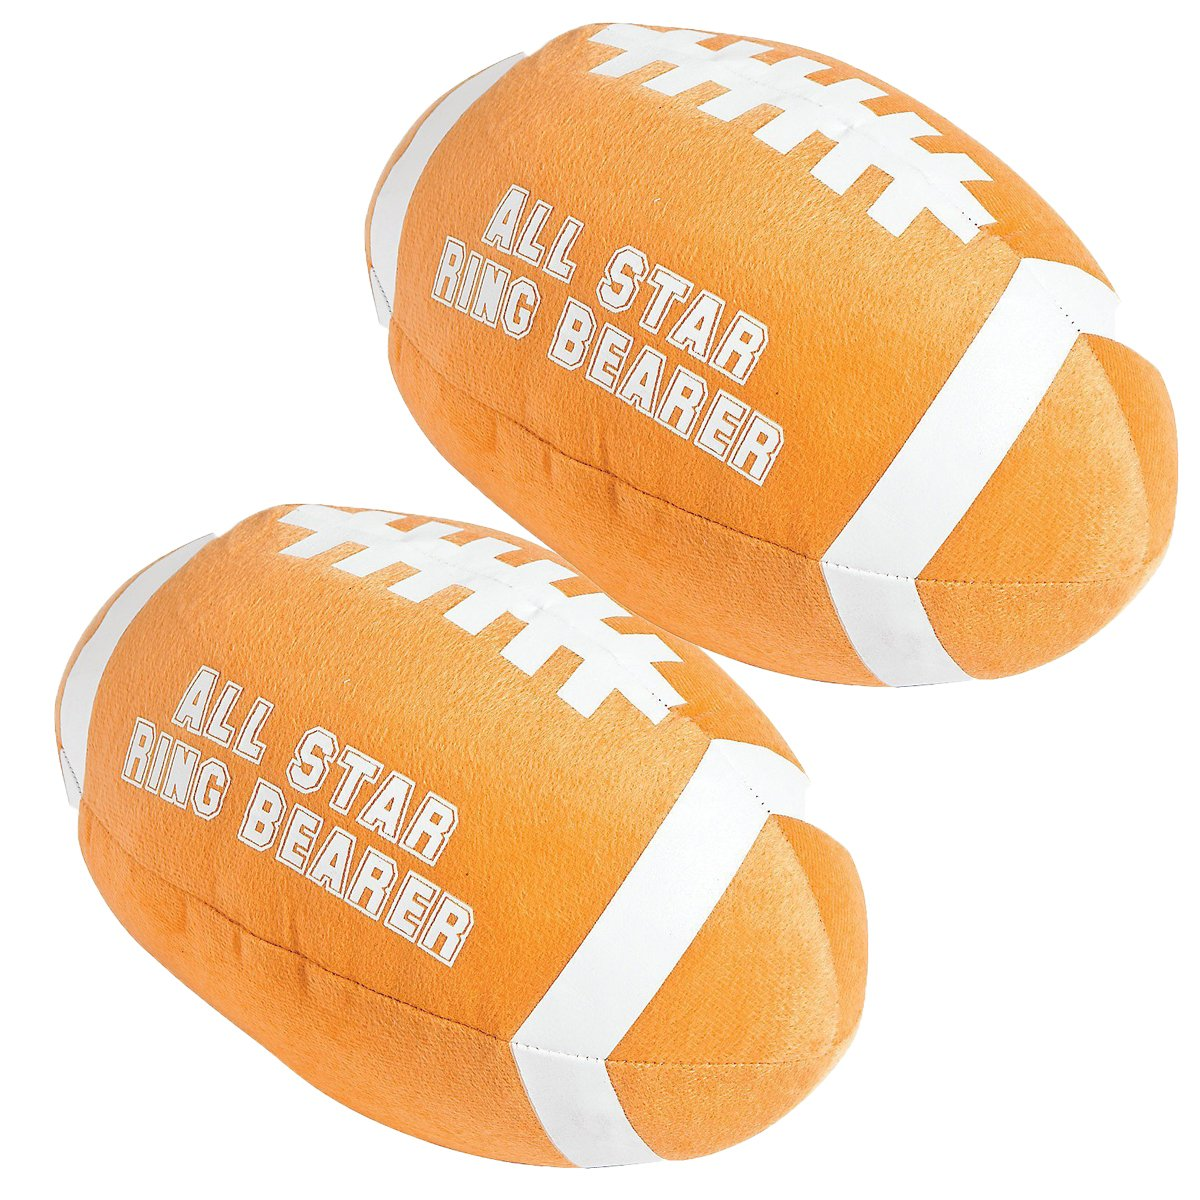 Plush All Star Ring Bearer Football Pack of 2 Wedding Ring Bearer Gifts